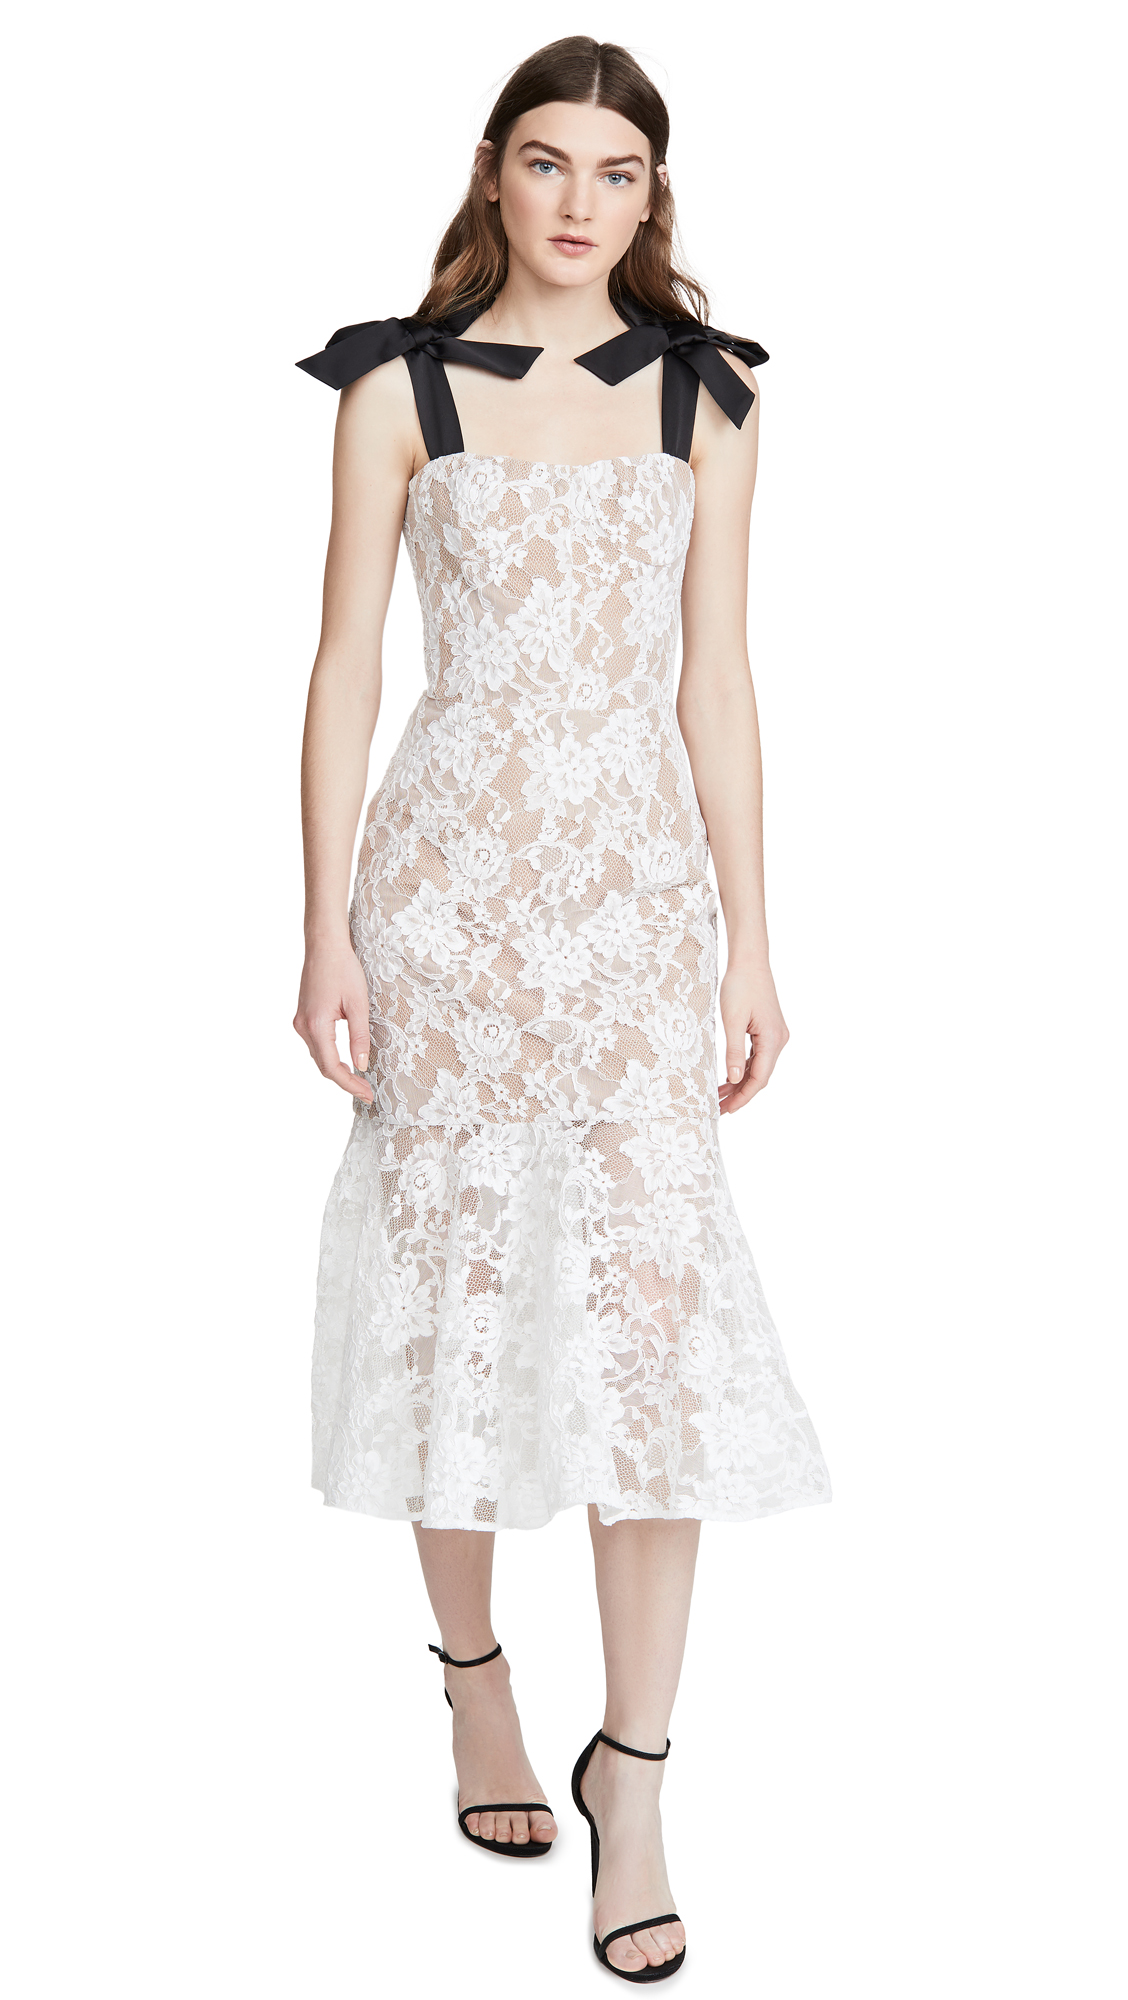 Buy ONE by Bronx & Banco online - photo of ONE by Willow Dress